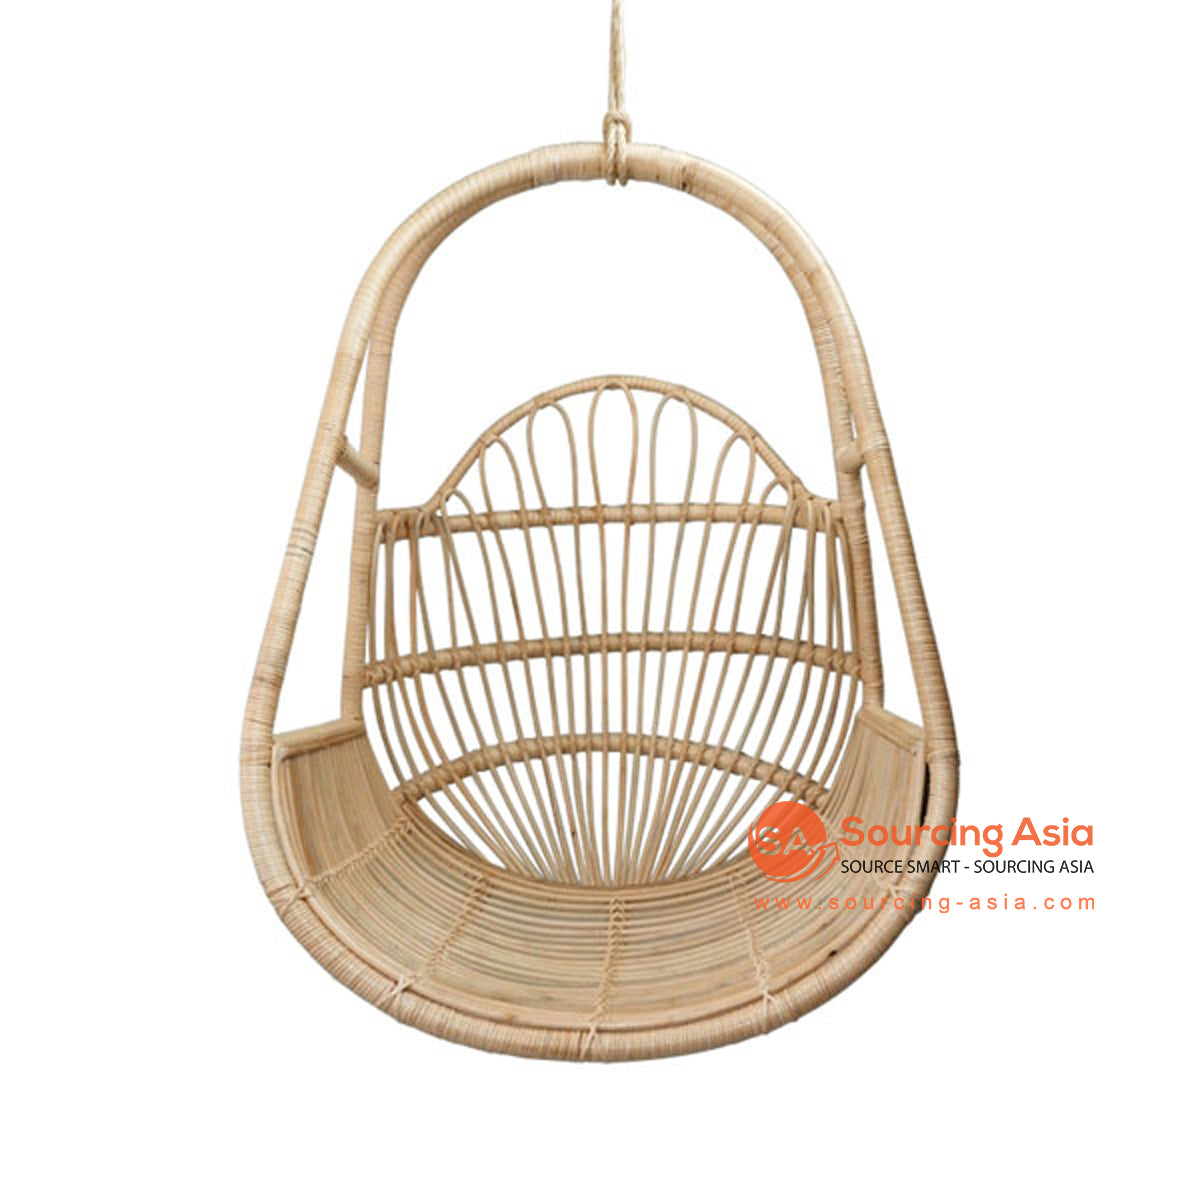 SHL175 NATURAL RATTAN HANGING CHAIR